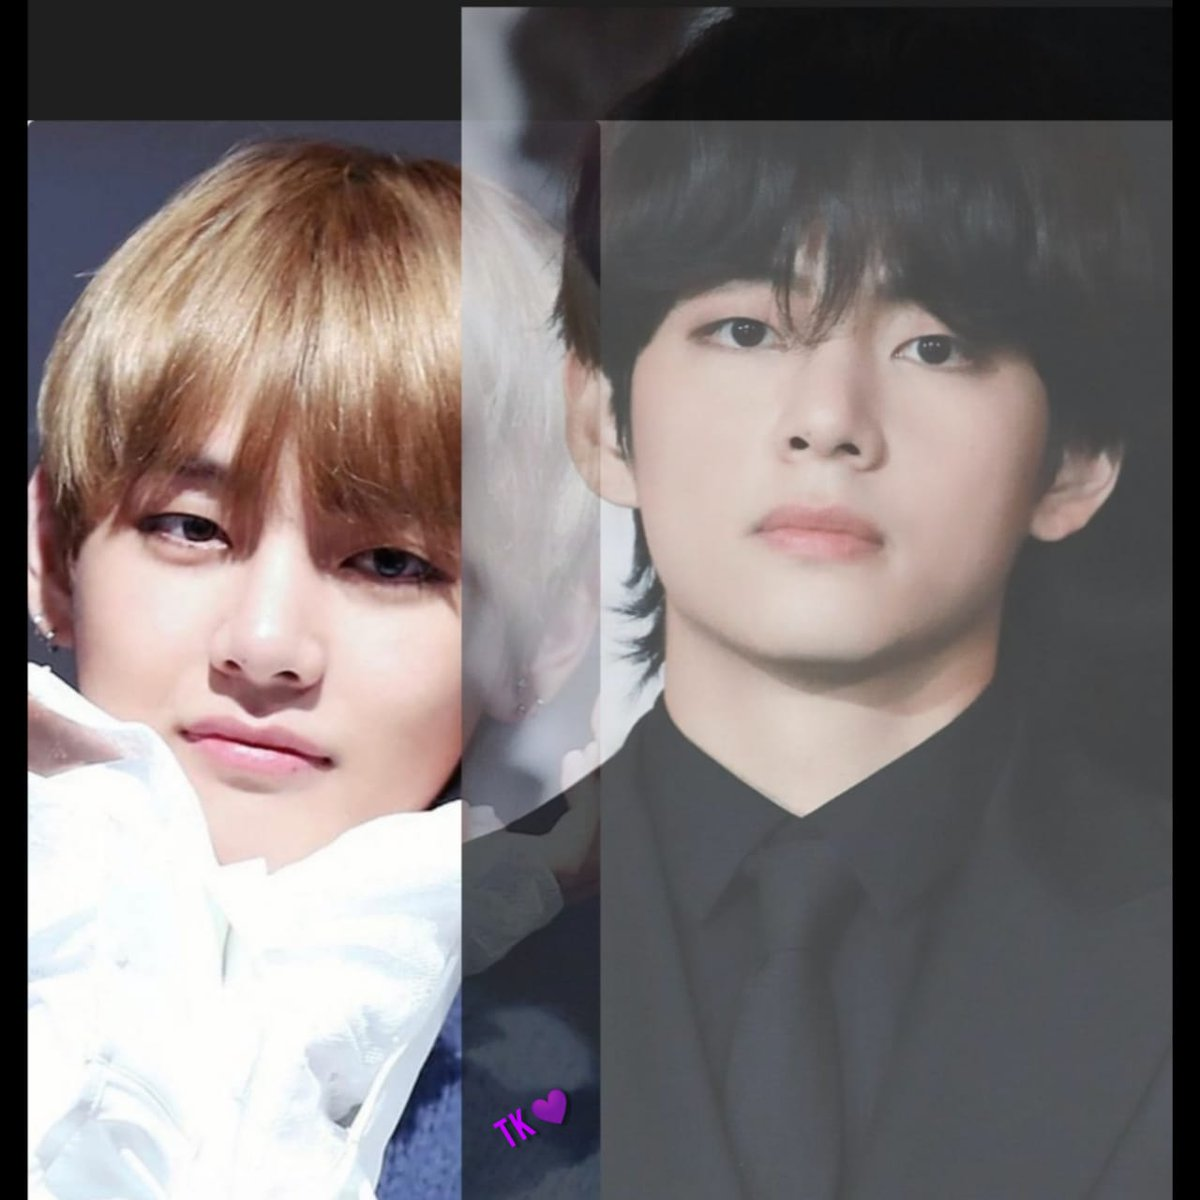 #taecute #TaehyungYouArePerfect  #TAEHYUNG  #Taehyungismylove #V https://t.co/oR63g9pTAq